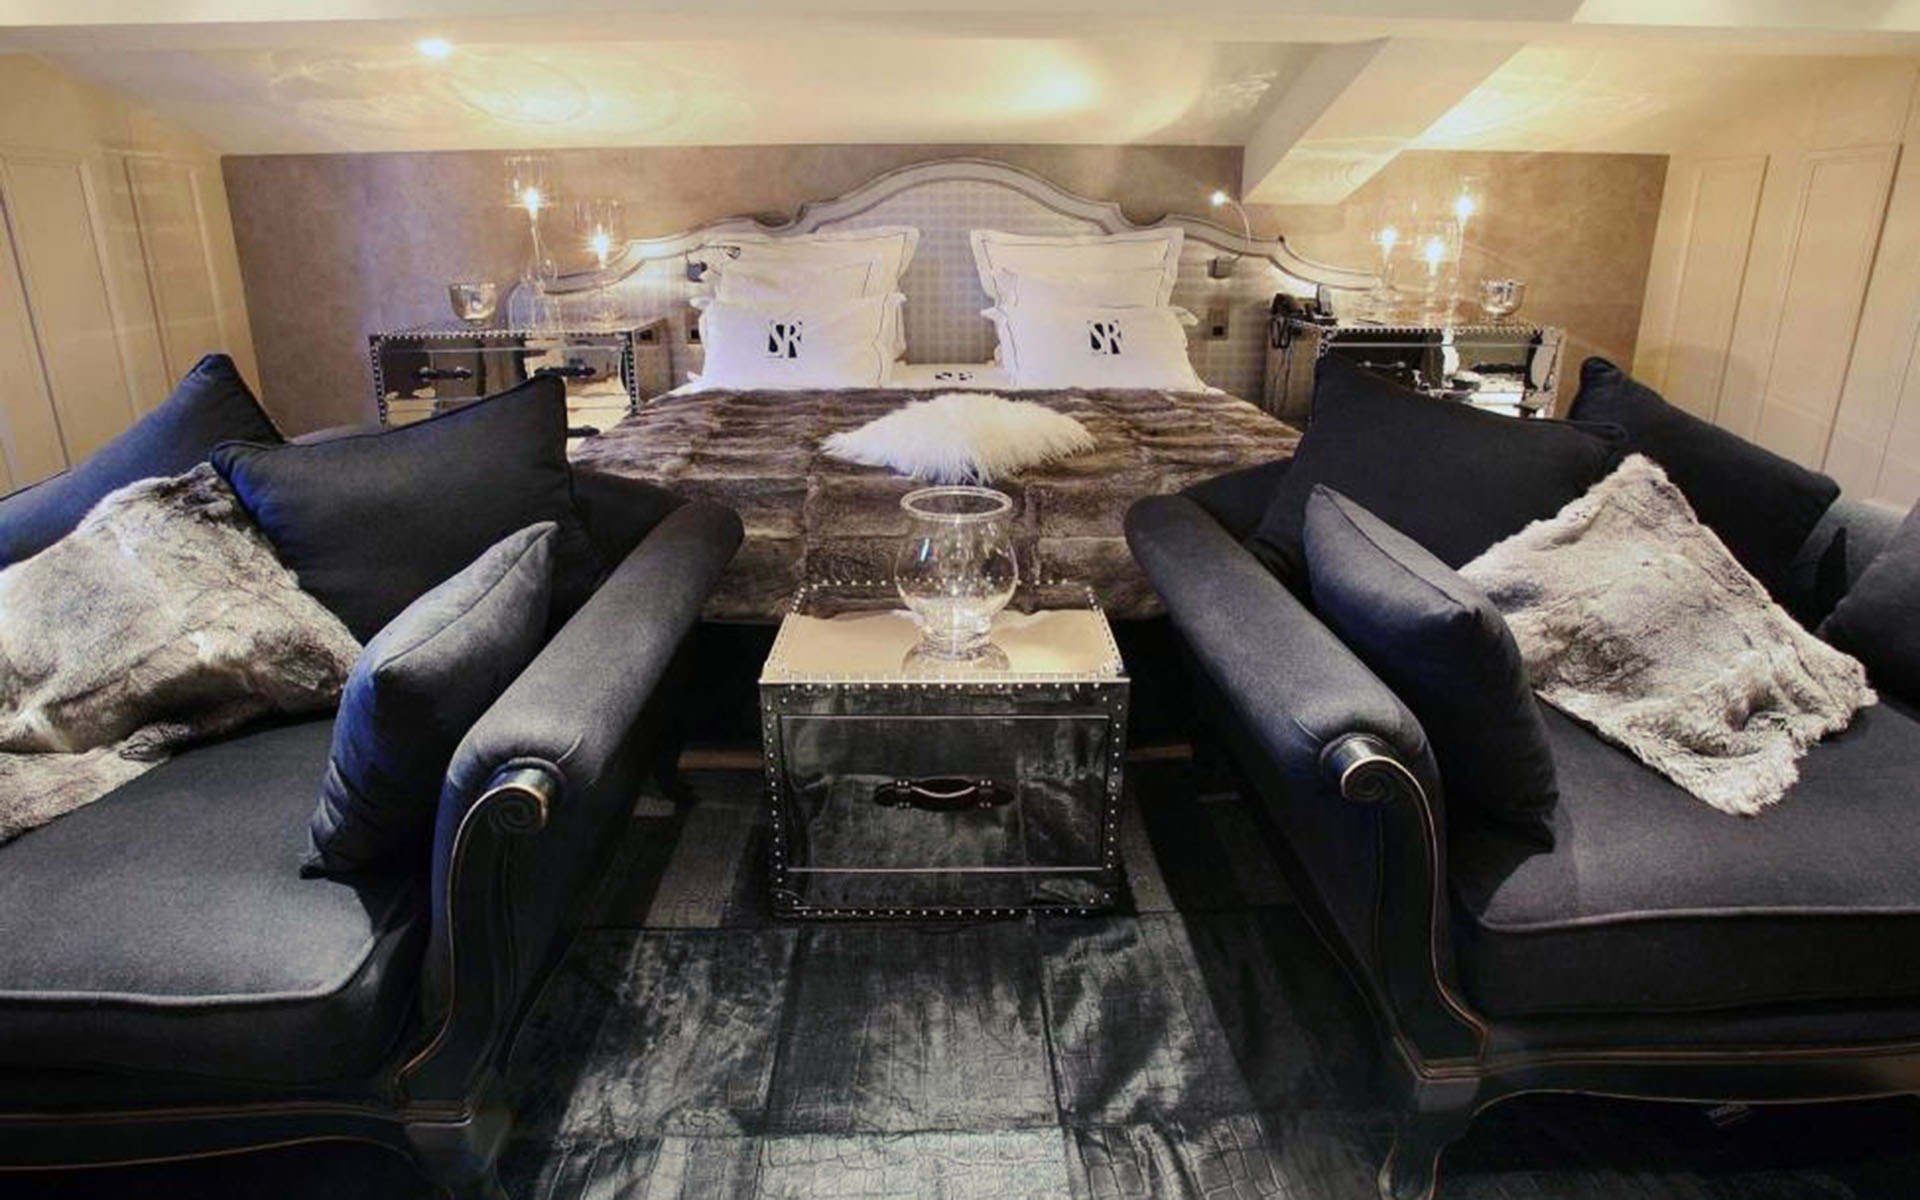 302/Site Maison Tournier/Hotel/Saint Roch/saint_roch_courchevel_appartement_love_8.jpg